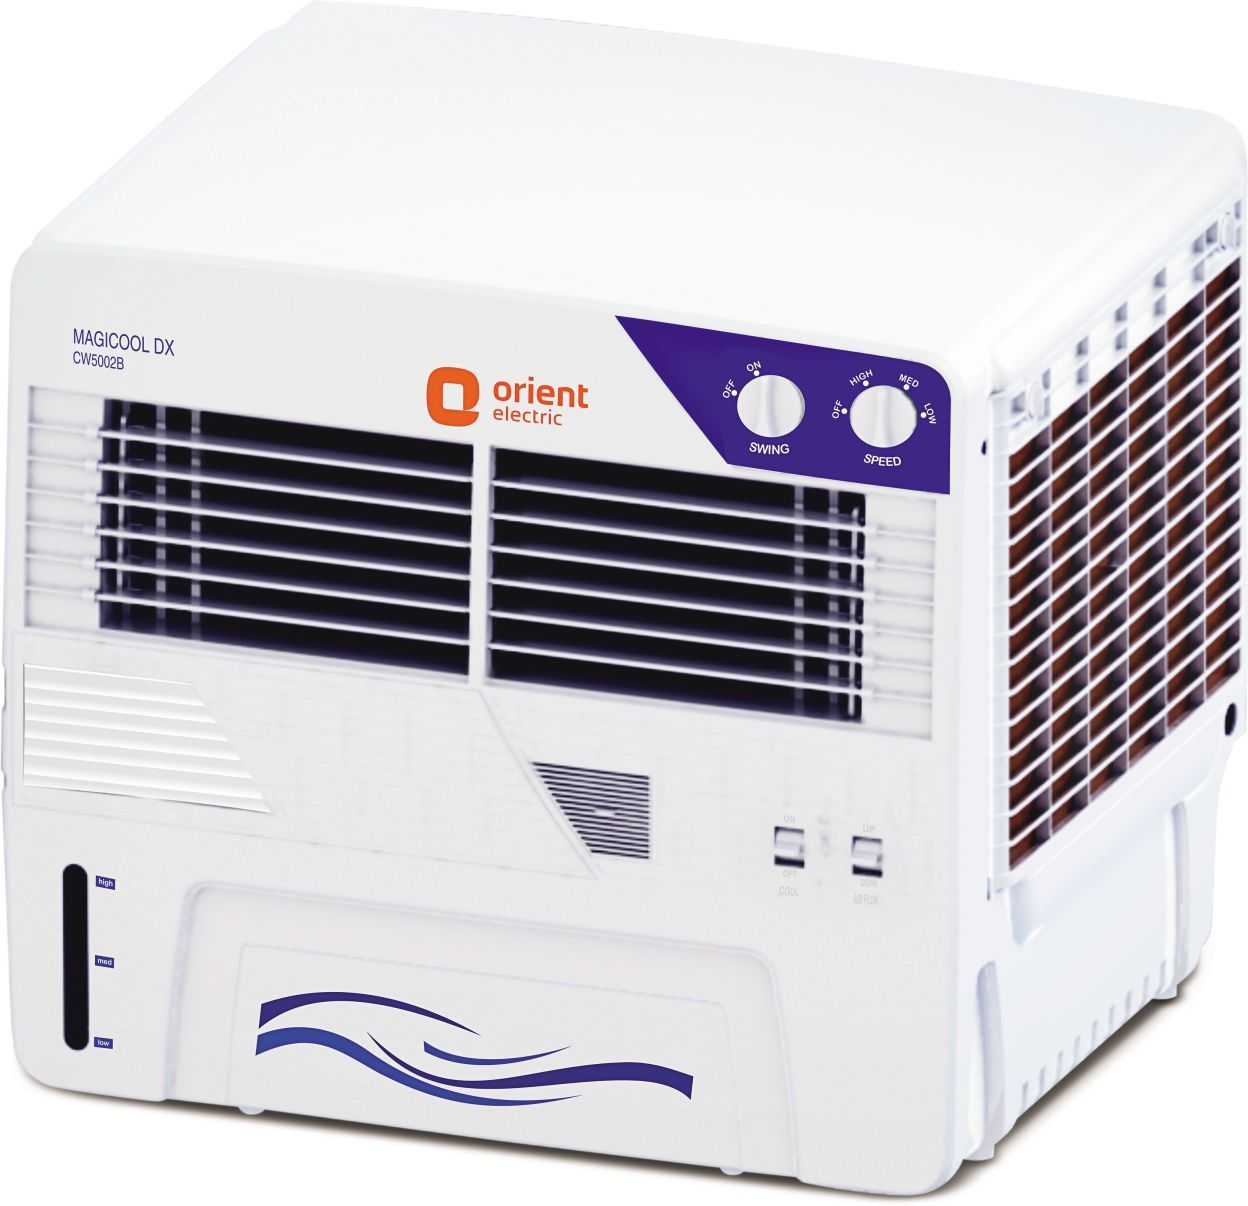 Orient Electric Magicool CW5002B 50L Air Cooler